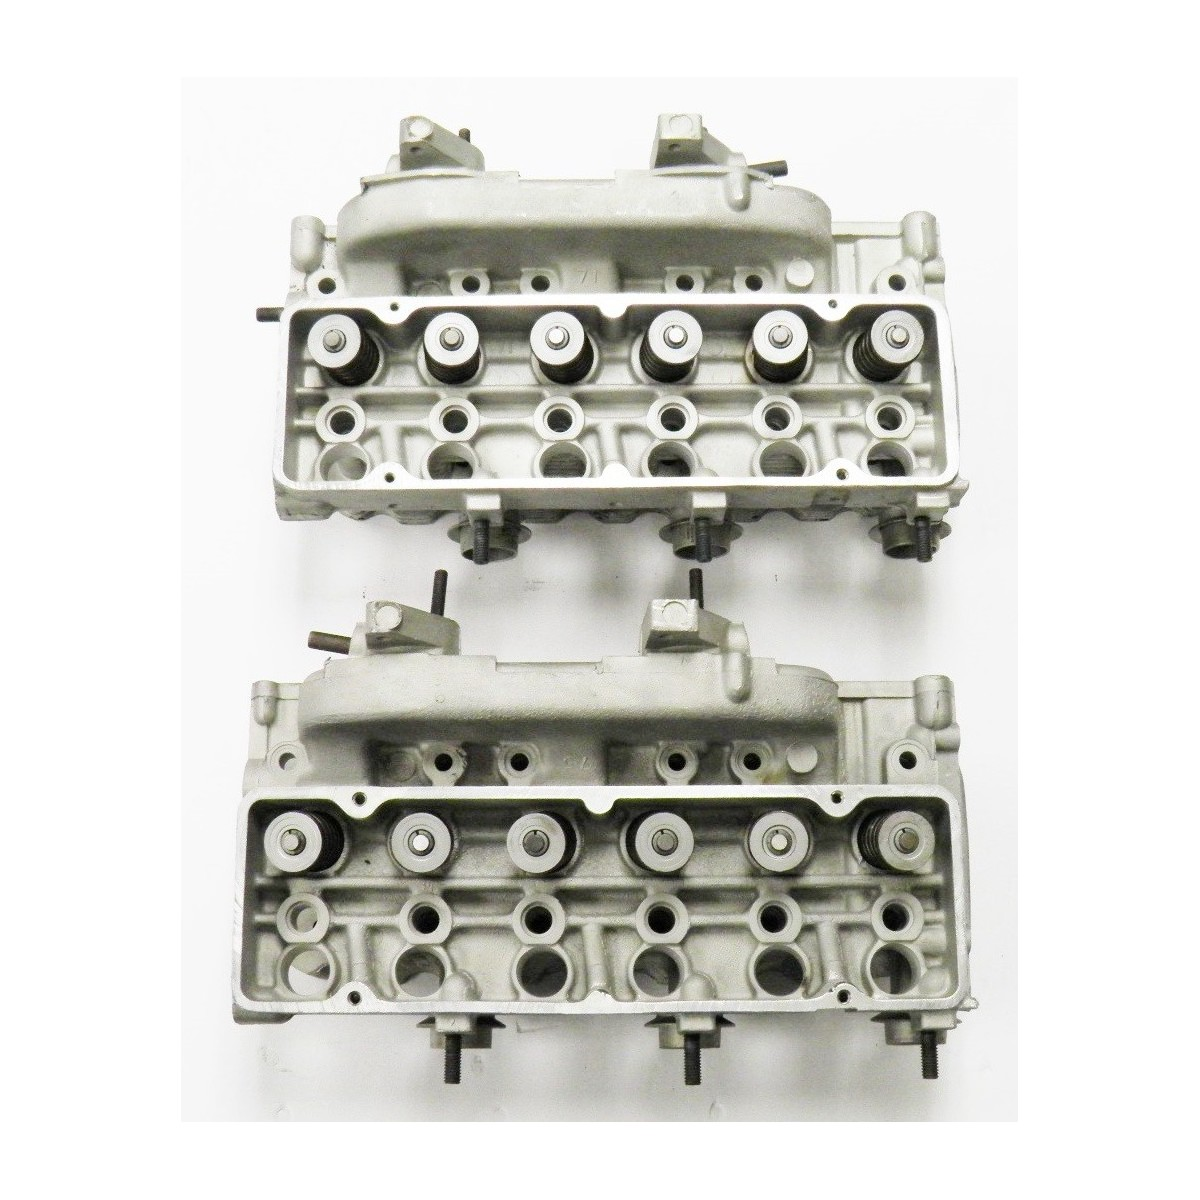 REMANUFACTURED HEADS 1965 140 HP